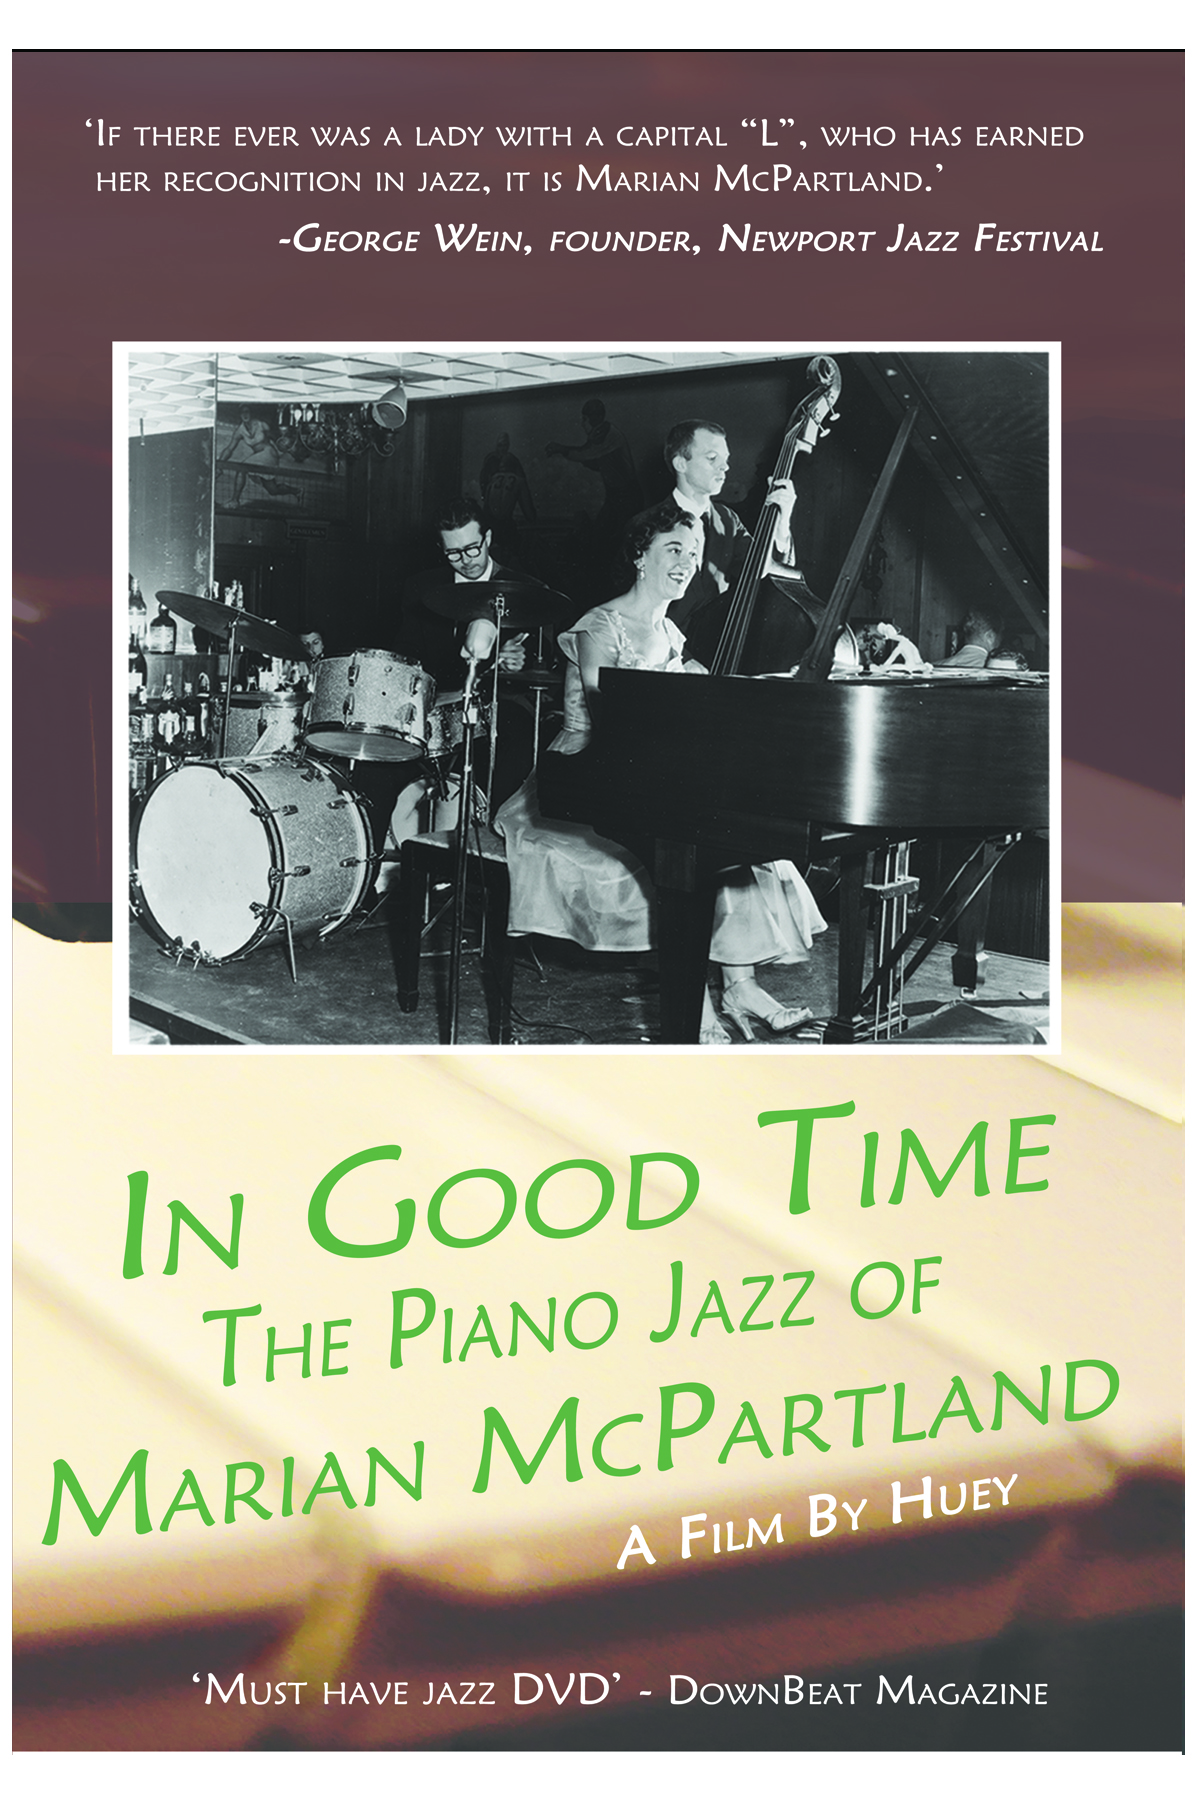 In Good Time, the Piano Jazz of Marian McPartland, DVD